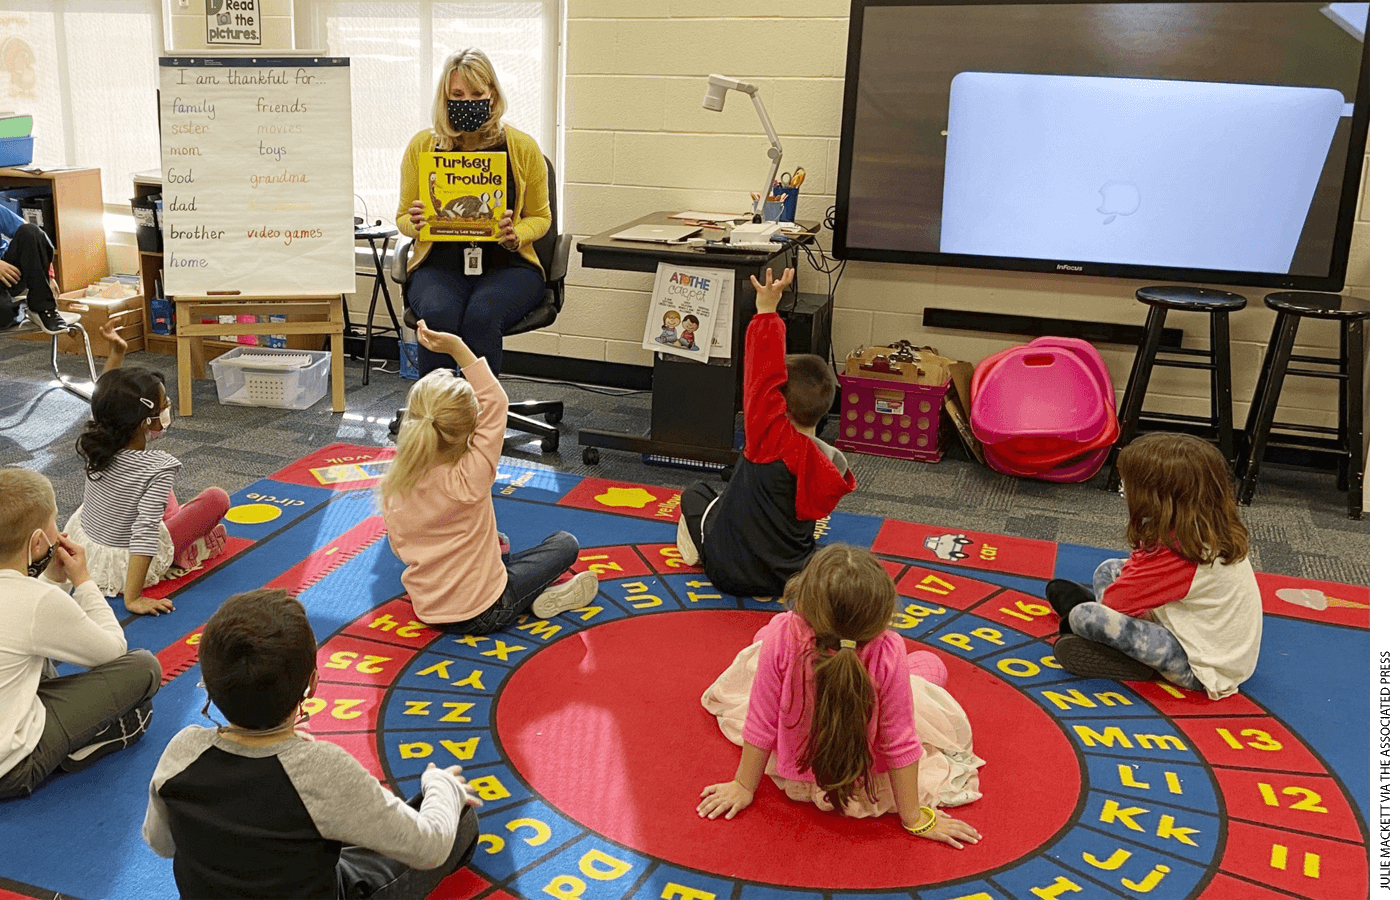 Kindergarten teacher Julie Mackett conducts her class at Ft. Meigs Elementary School, in Perrysburg, Ohio.